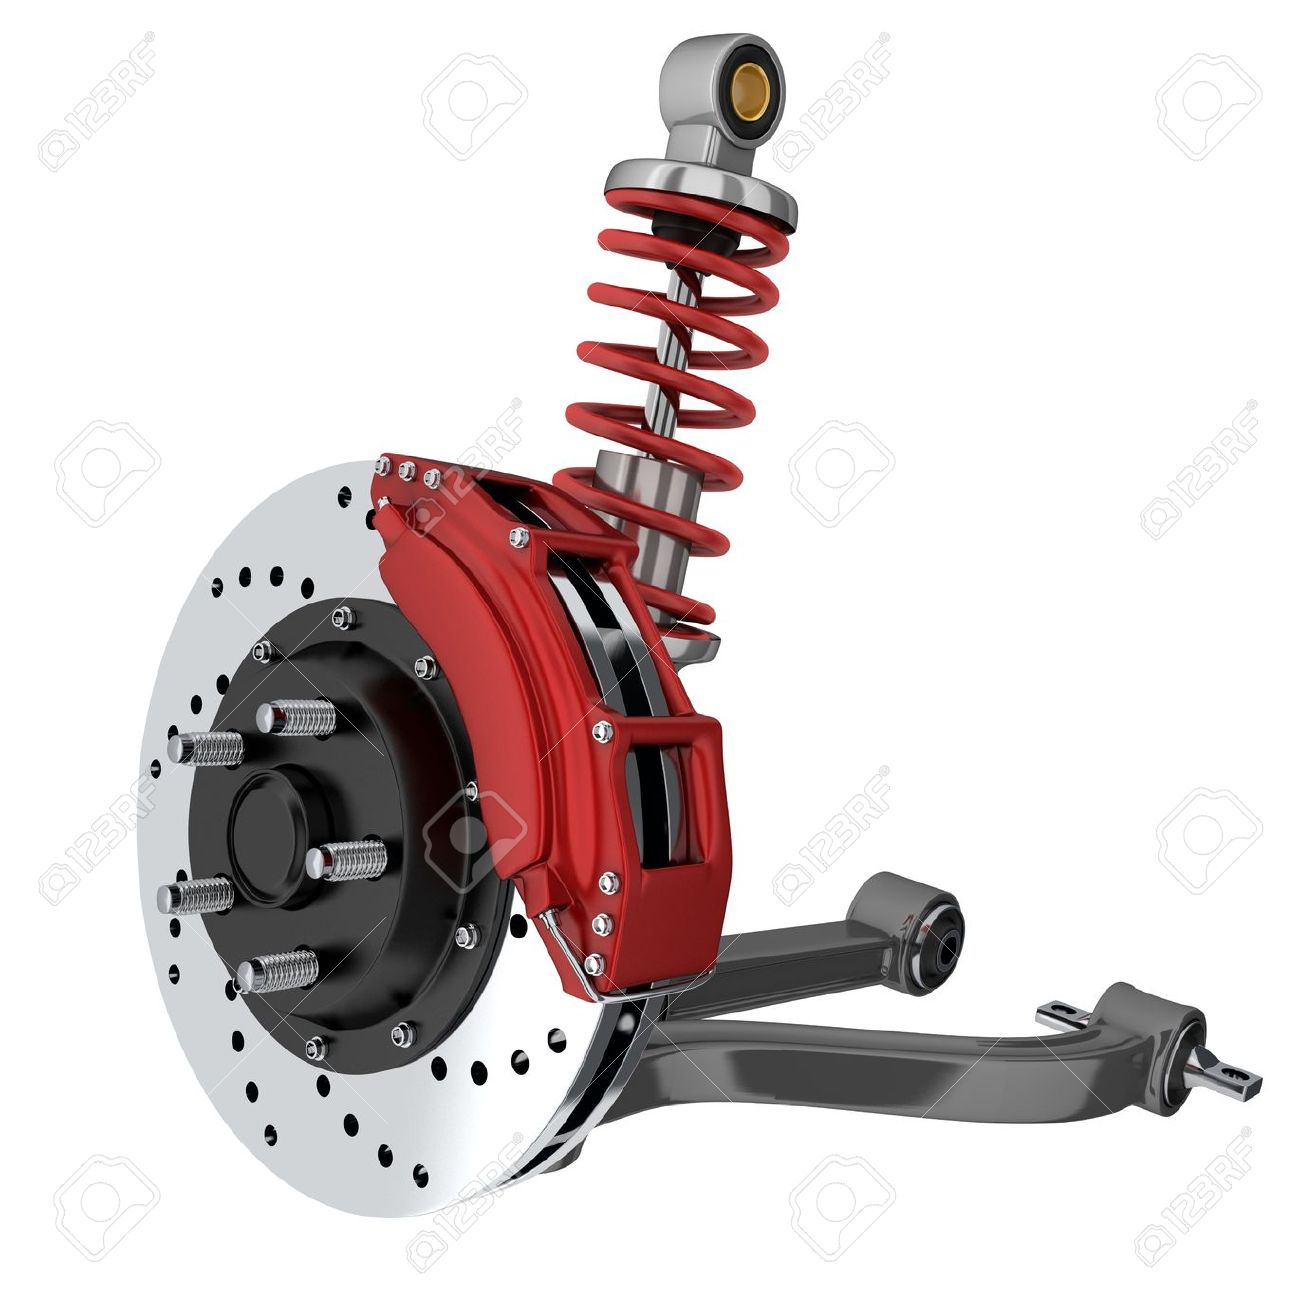 Car suspension and brake disk (done in 3d, isolated) - 38777803